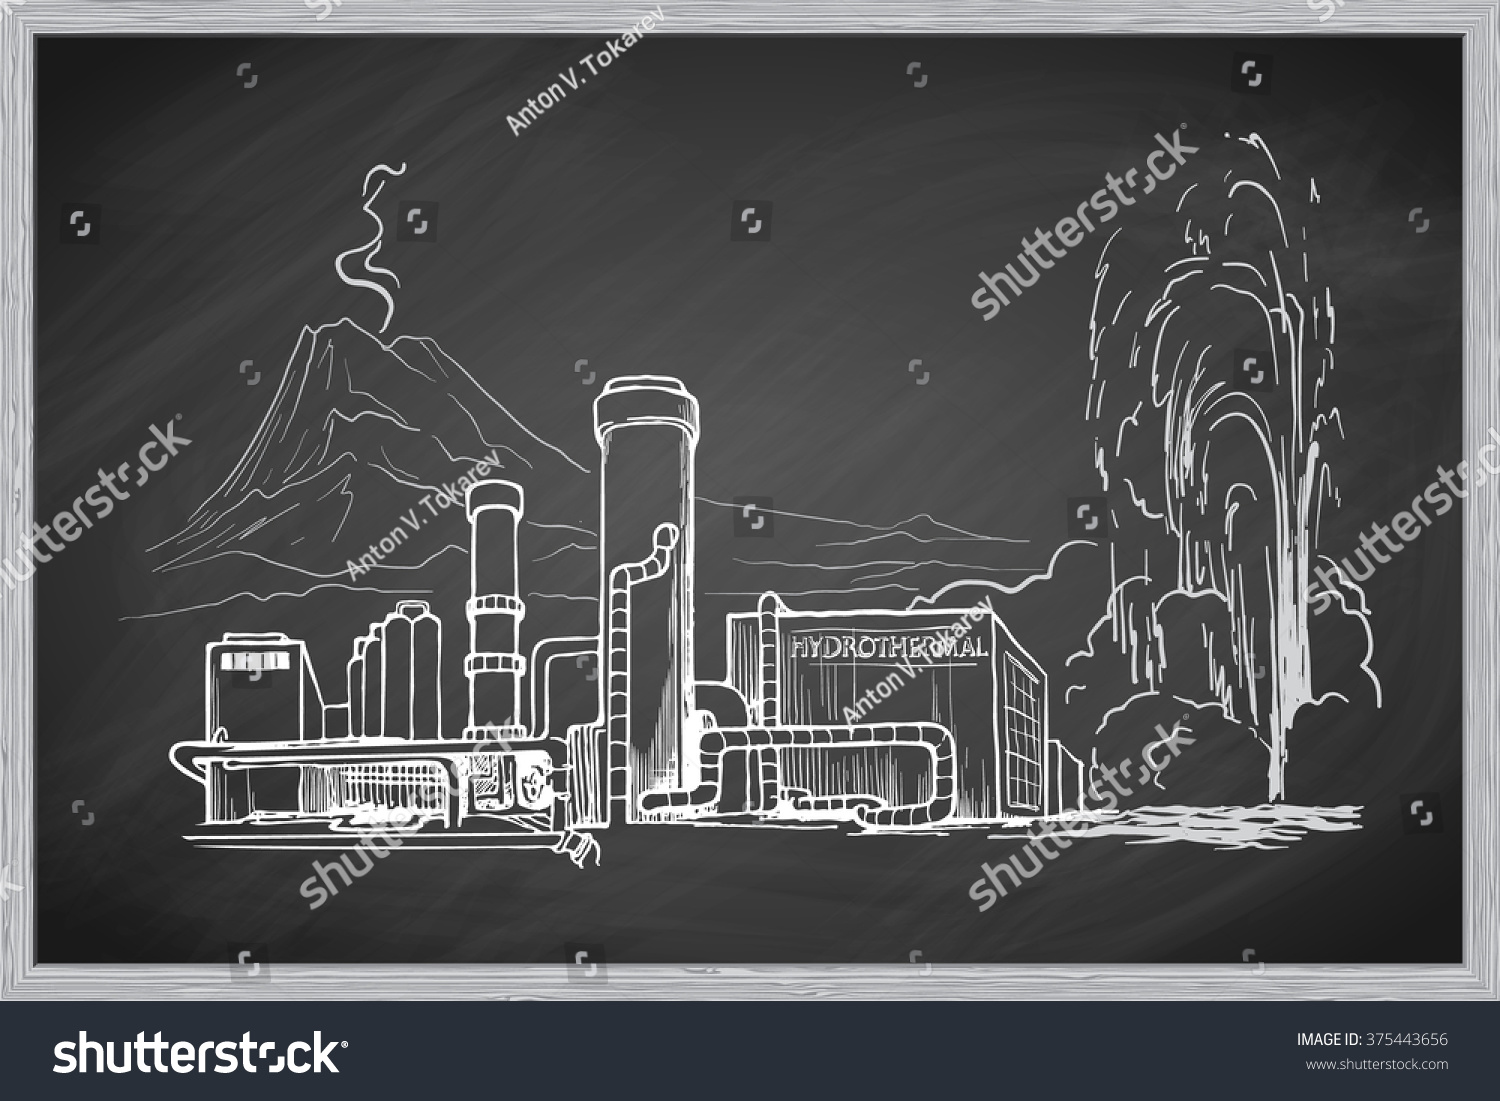 Geothermal Power Station Sketch Imitating Chalk Stock Vector Plant Schematic Diagram Drawing On A Blackboard Is Isolated